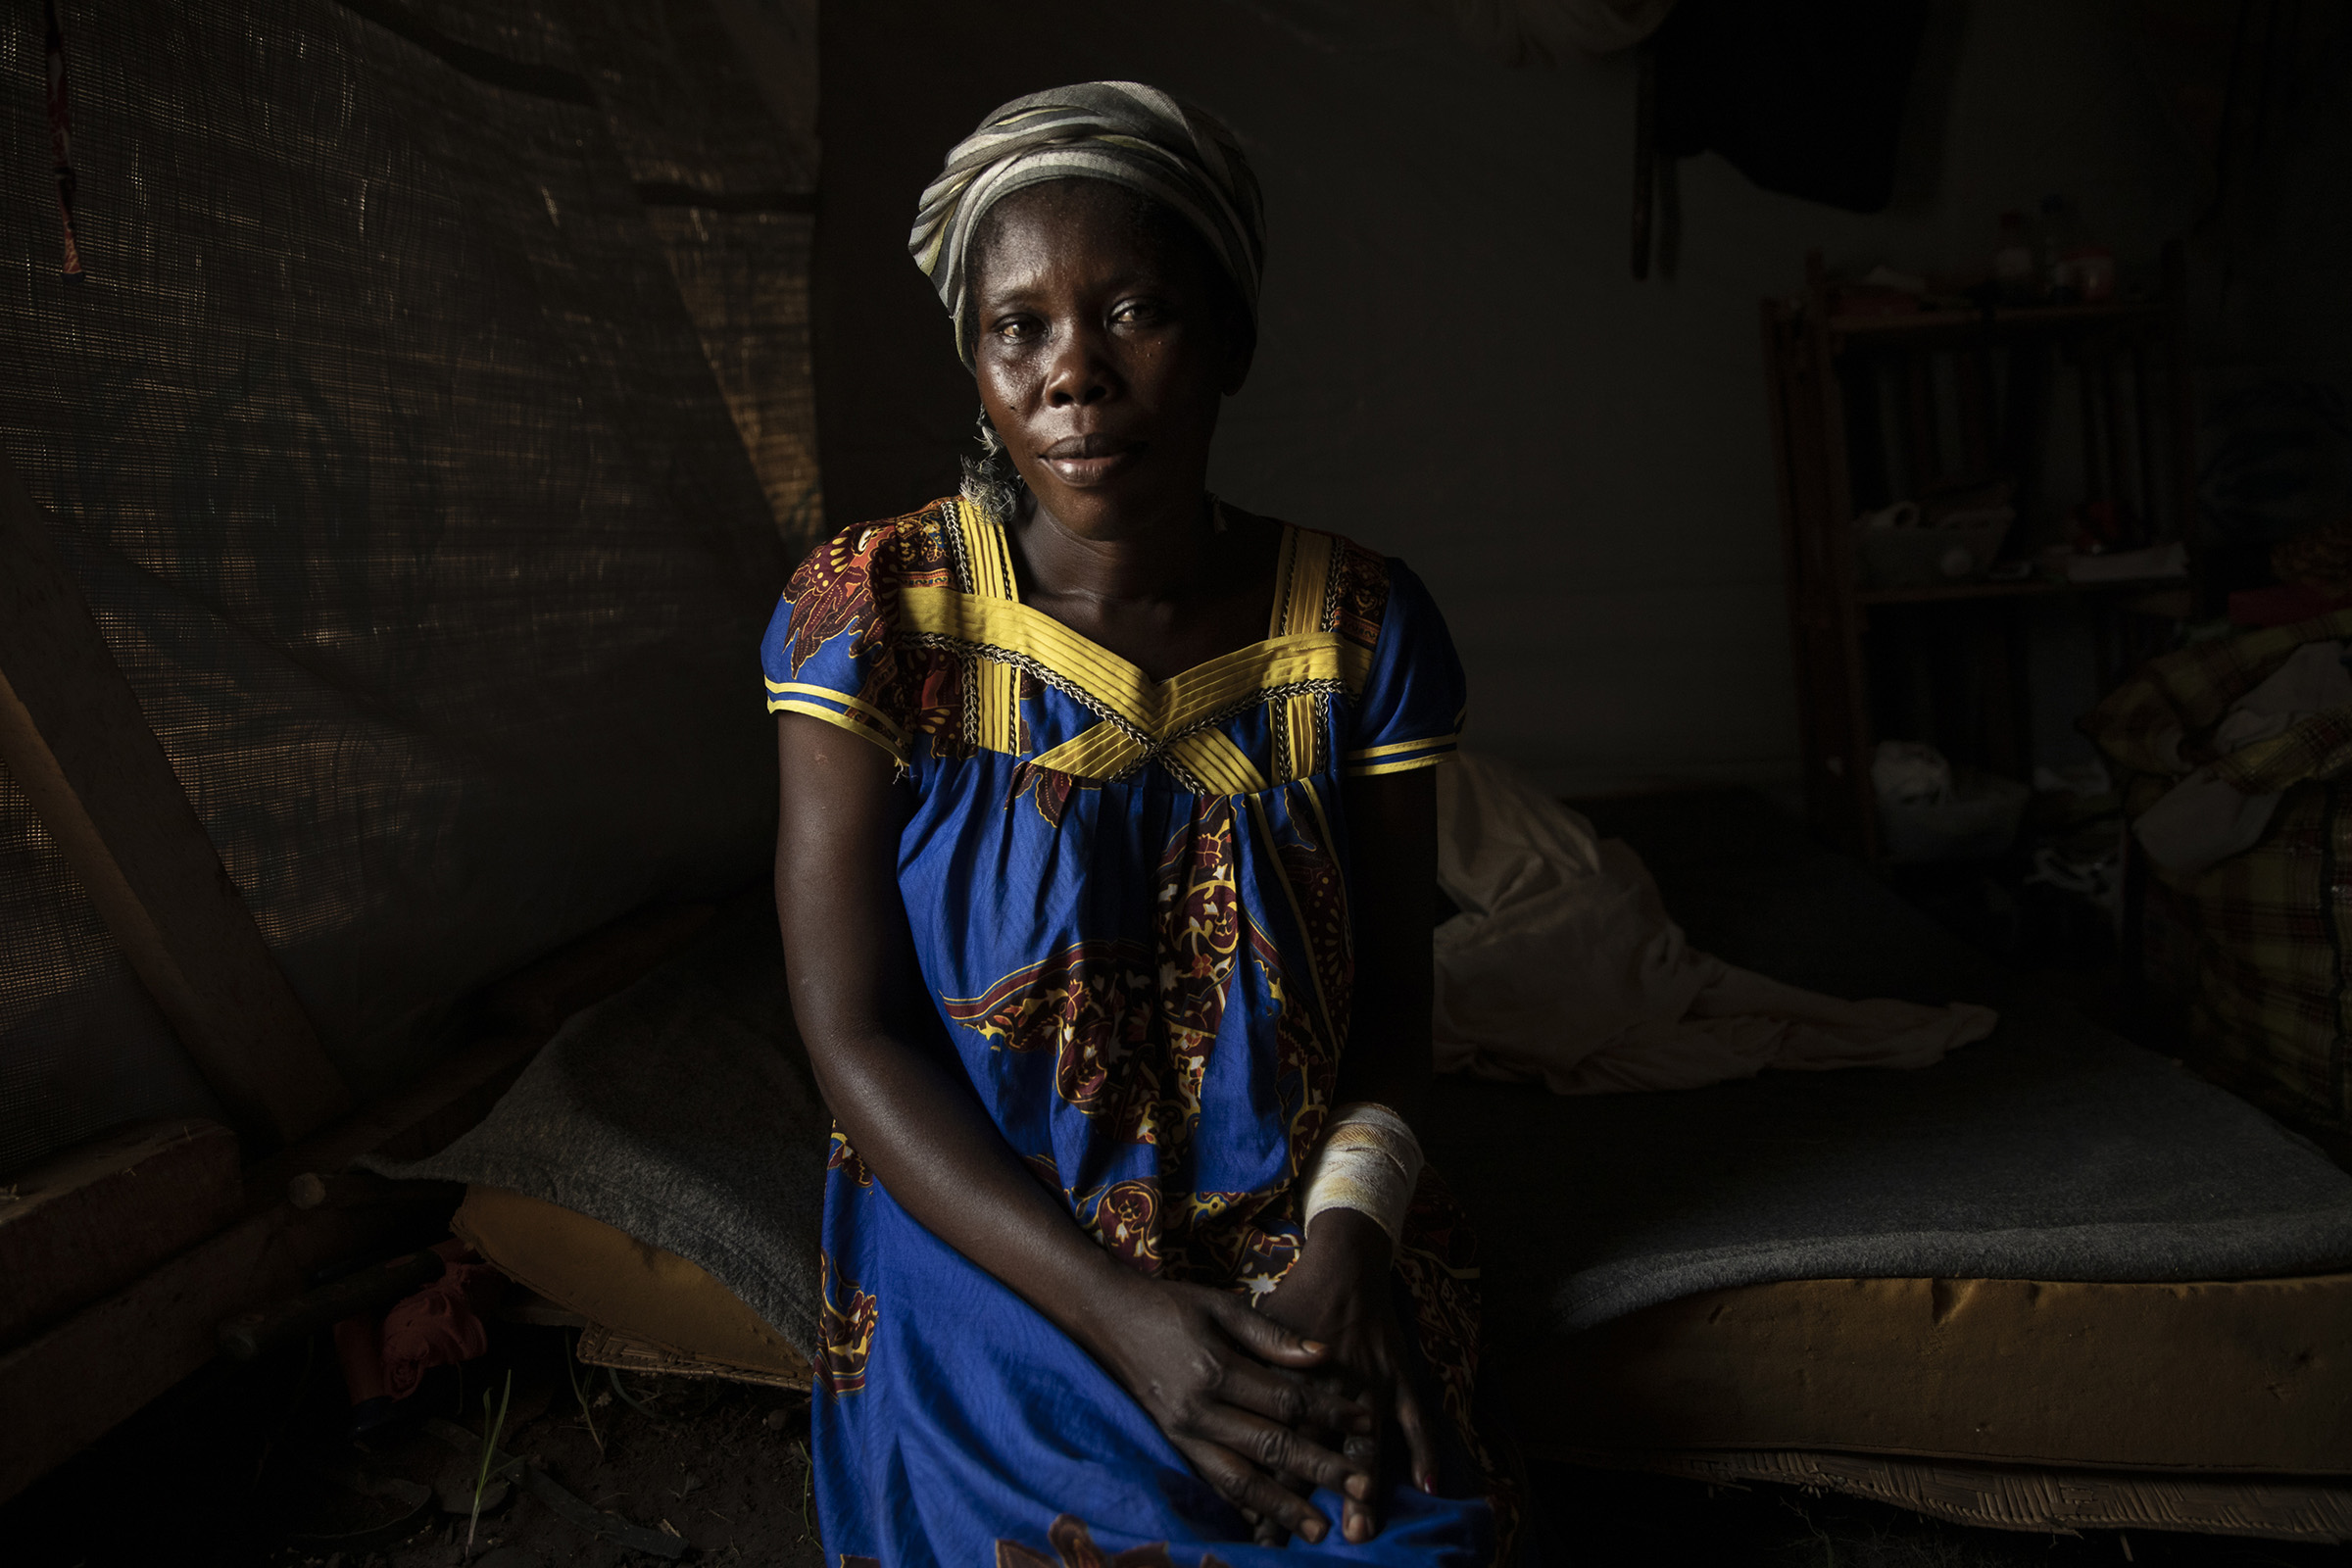 Nina Yaeke, a 30-year-old mother of 8, used to live on Monkey Island, midway between the Central African Republic and the Democratic Republic of Congo. She completely lost her home to flooding, and hopes to live in Bangui in the future.